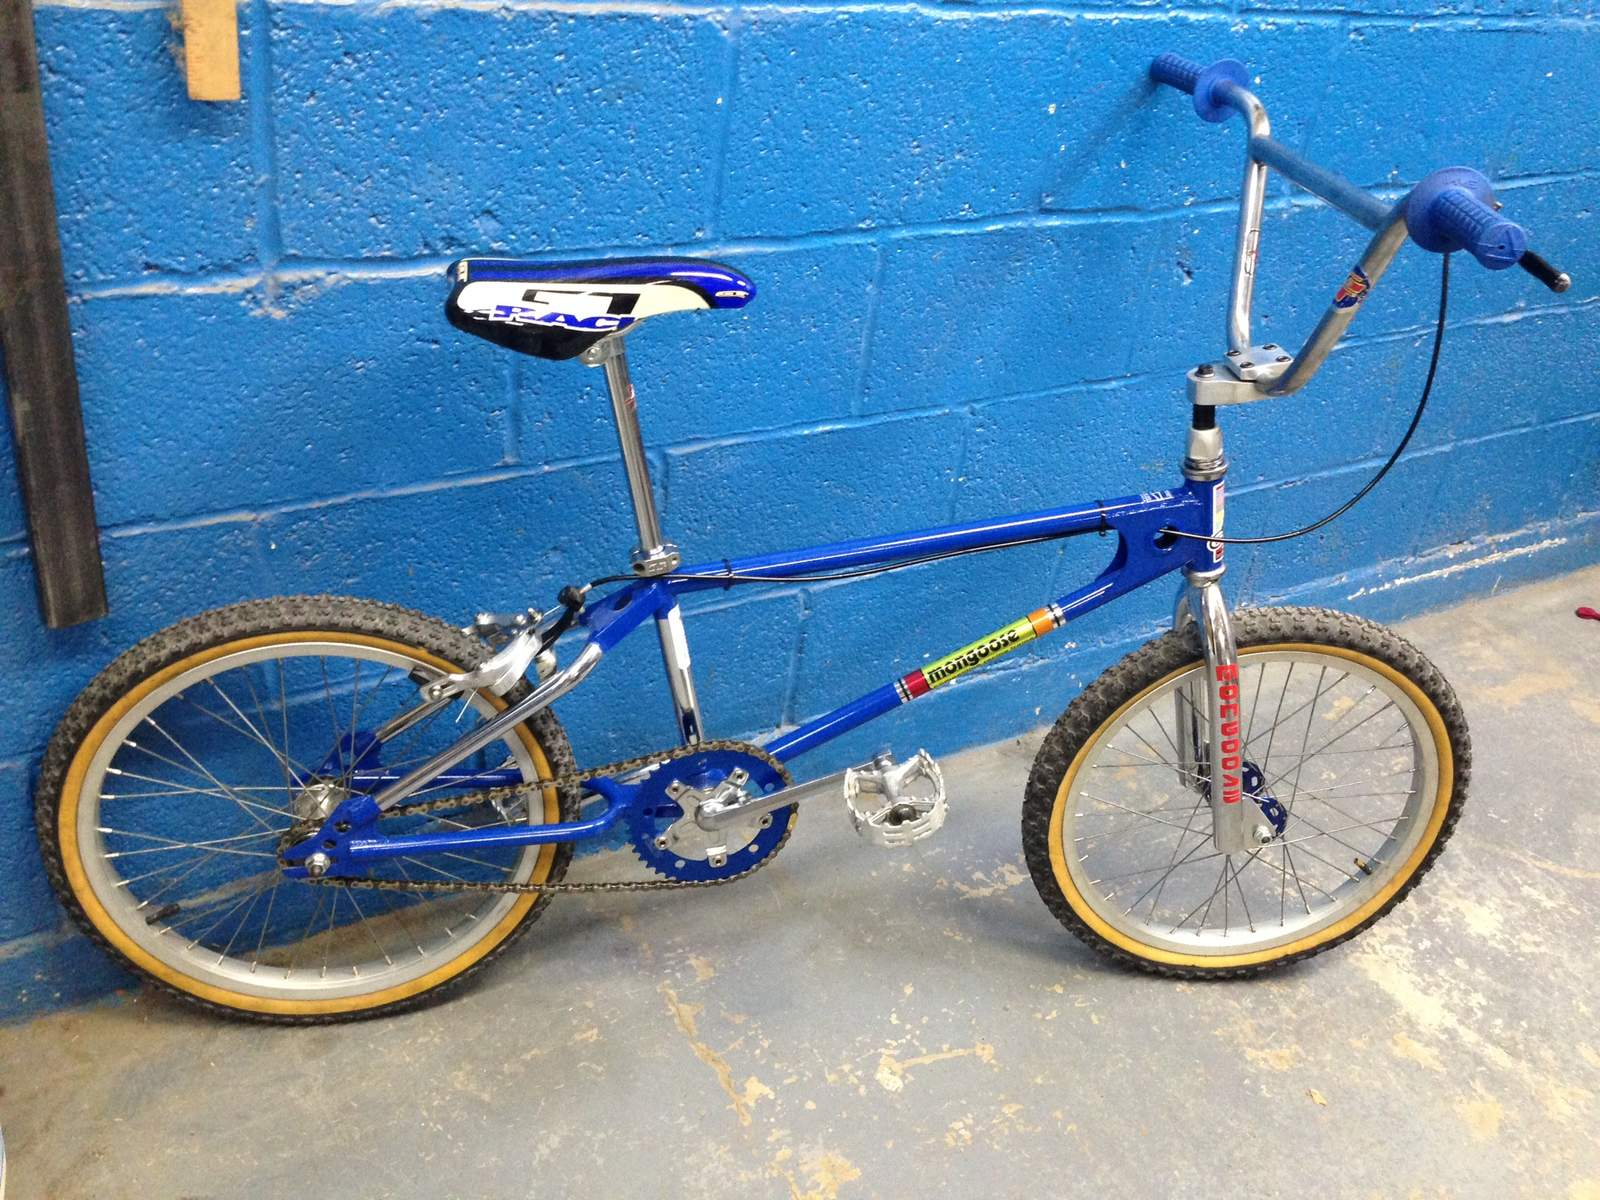 http://uploads.bmxmuseum.com/user-images/207817/c1066570-e6dc-4d43-aa4e-1b54cd61b2e75adeb12445.jpeg